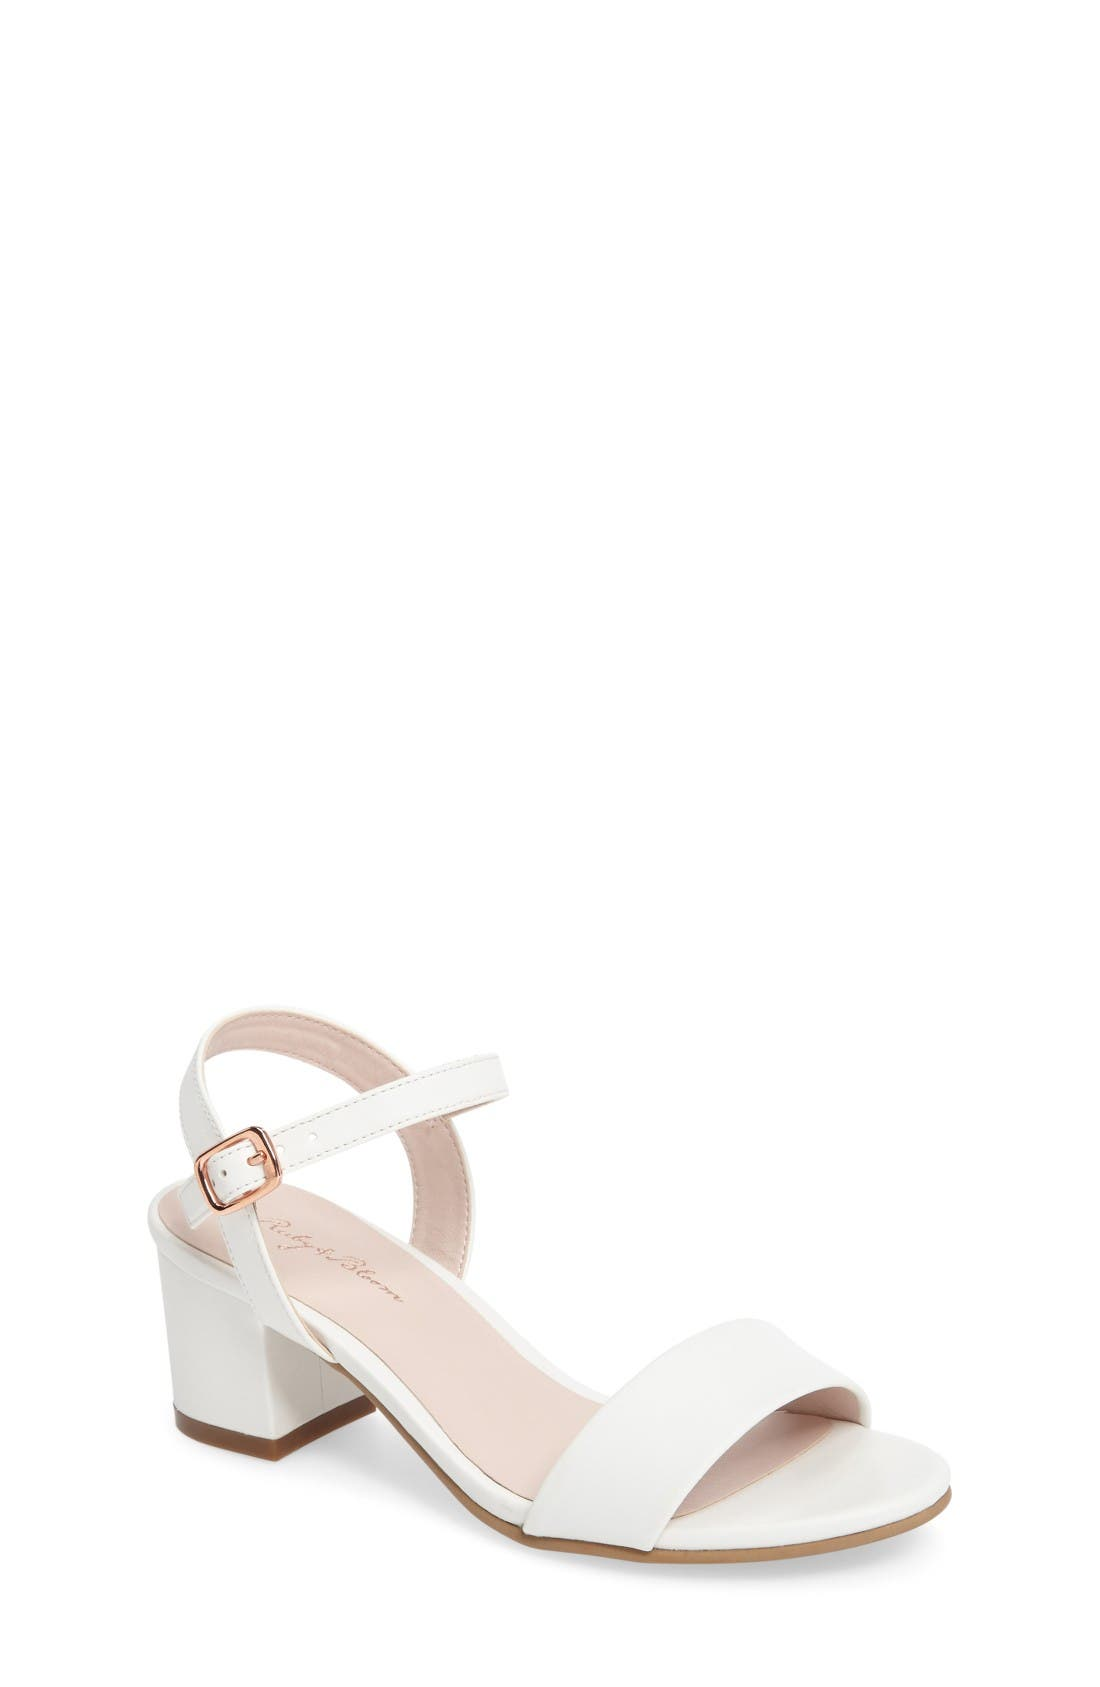 Danni Block Heel Sandal,                         Main,                         color, White Faux Leather